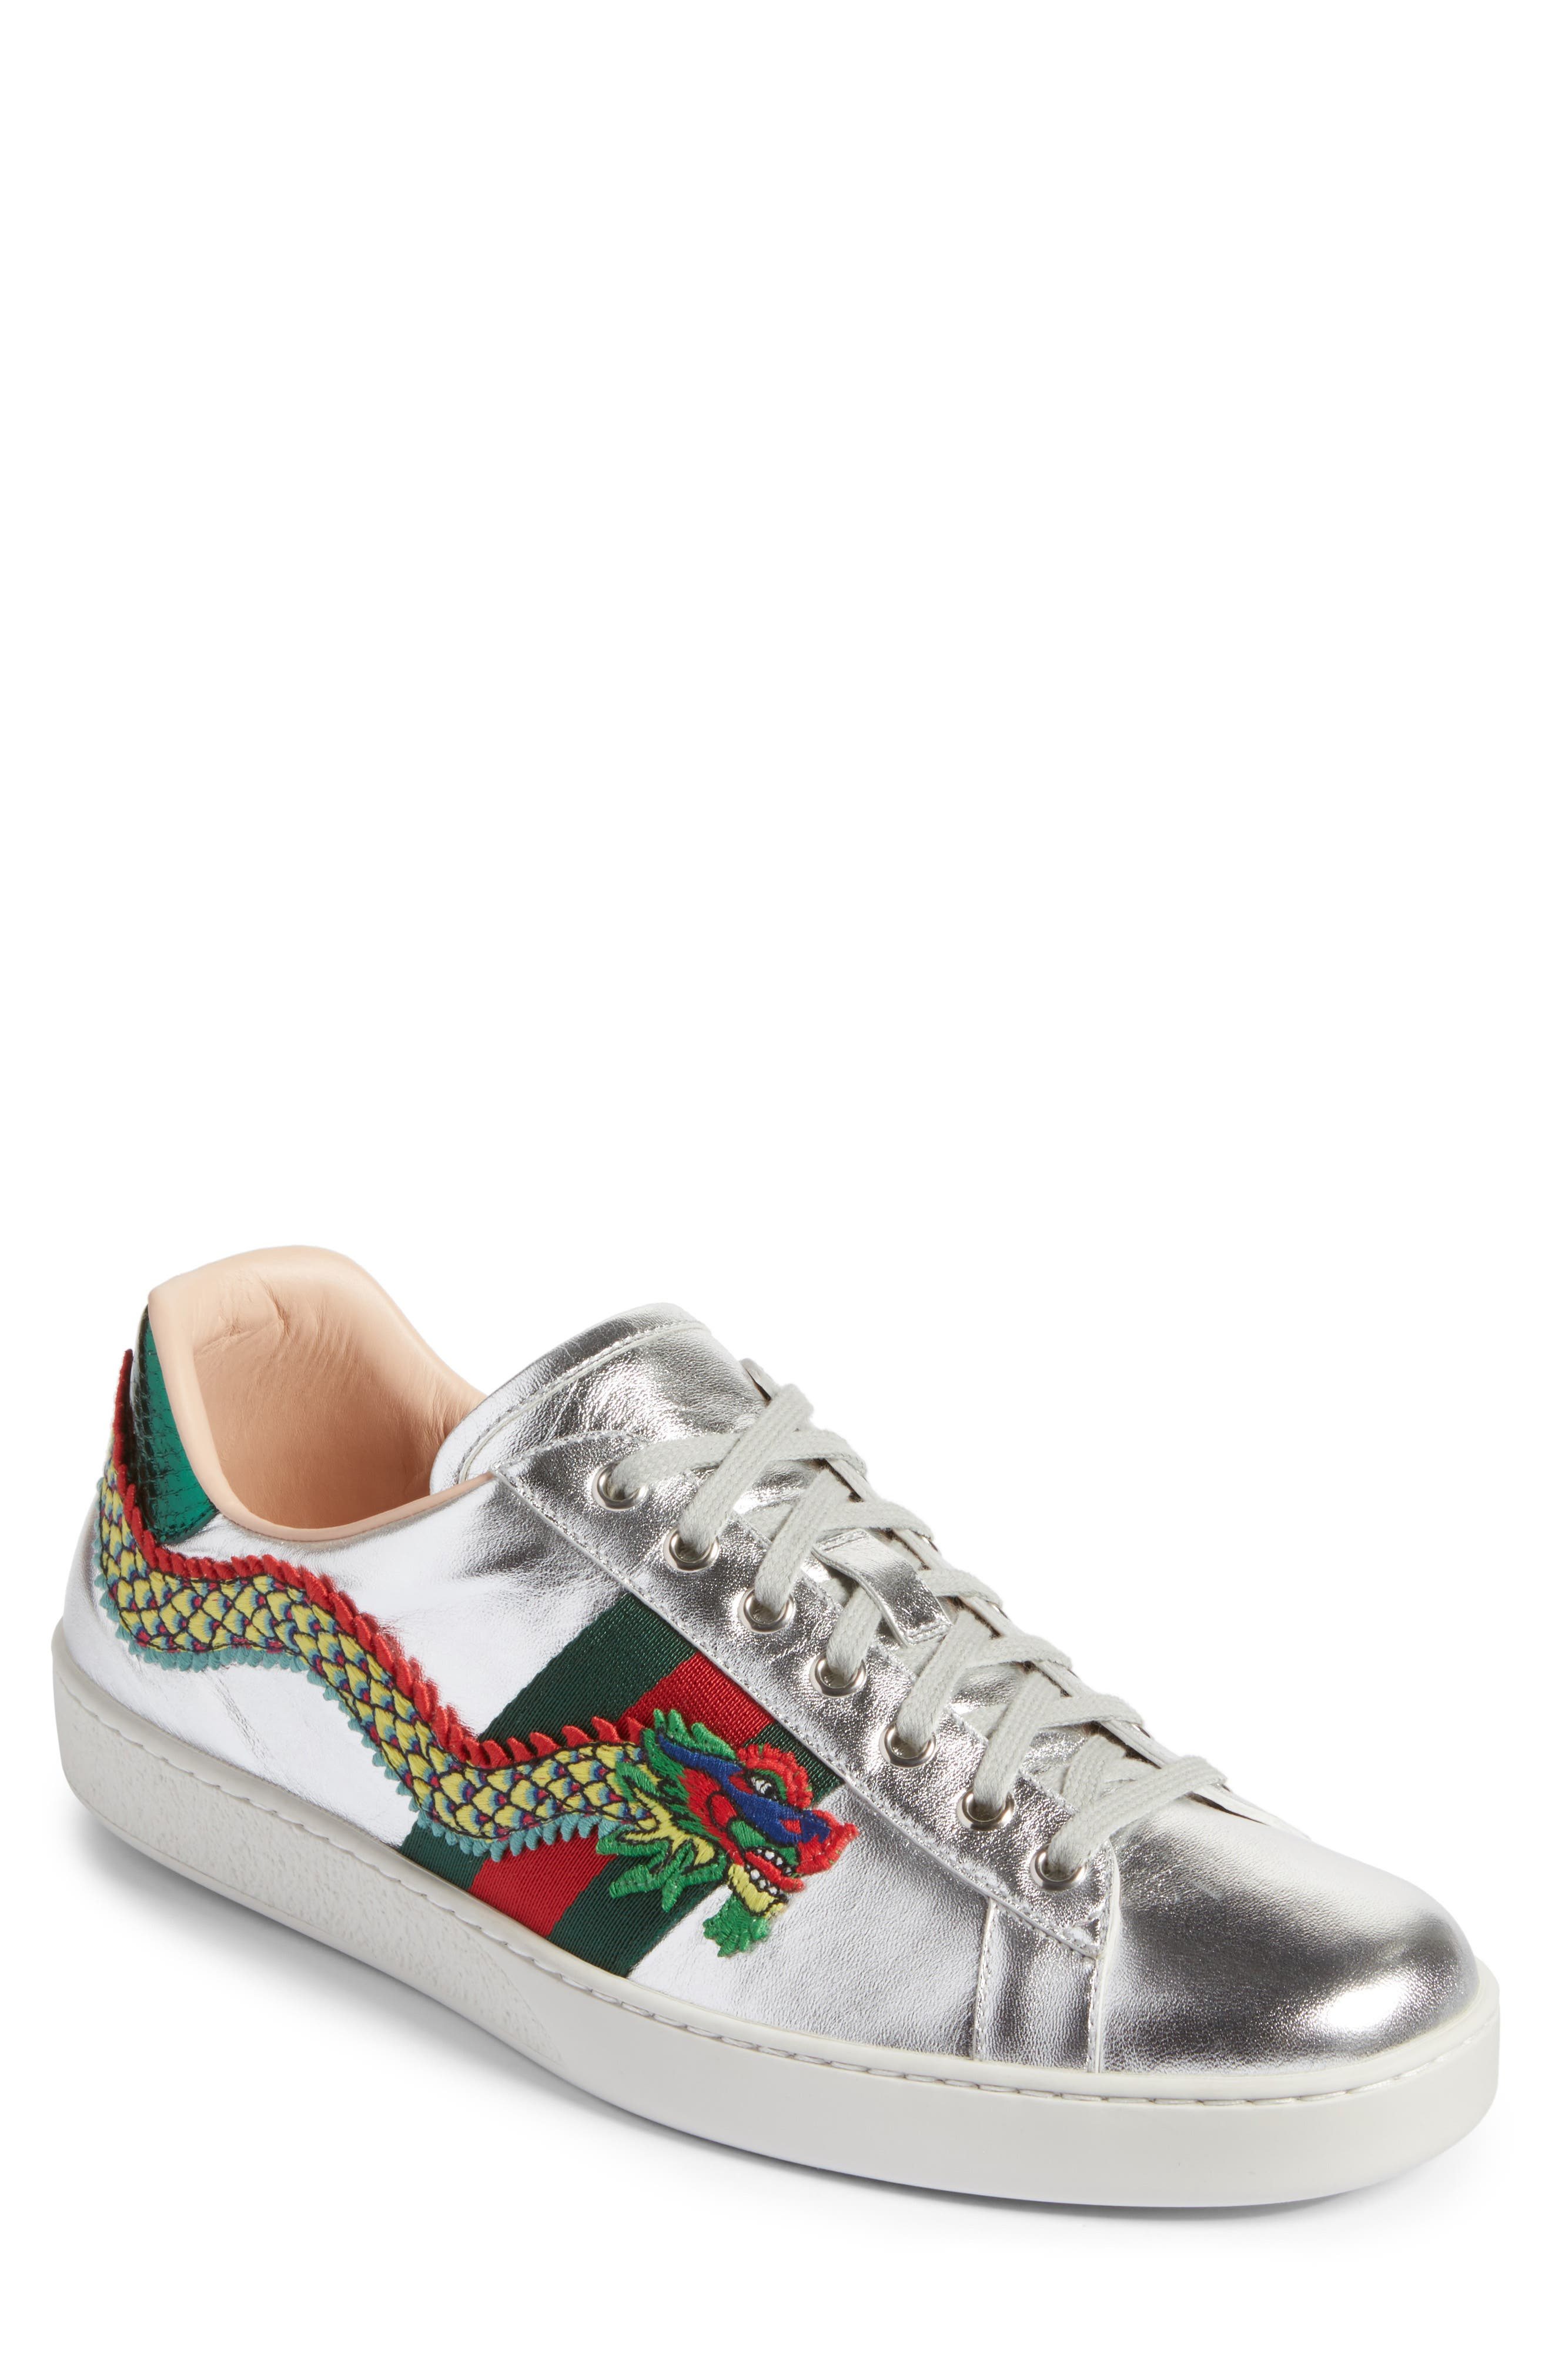 gucci shoes price list. gucci new ace dragon sneaker (men) shoes price list